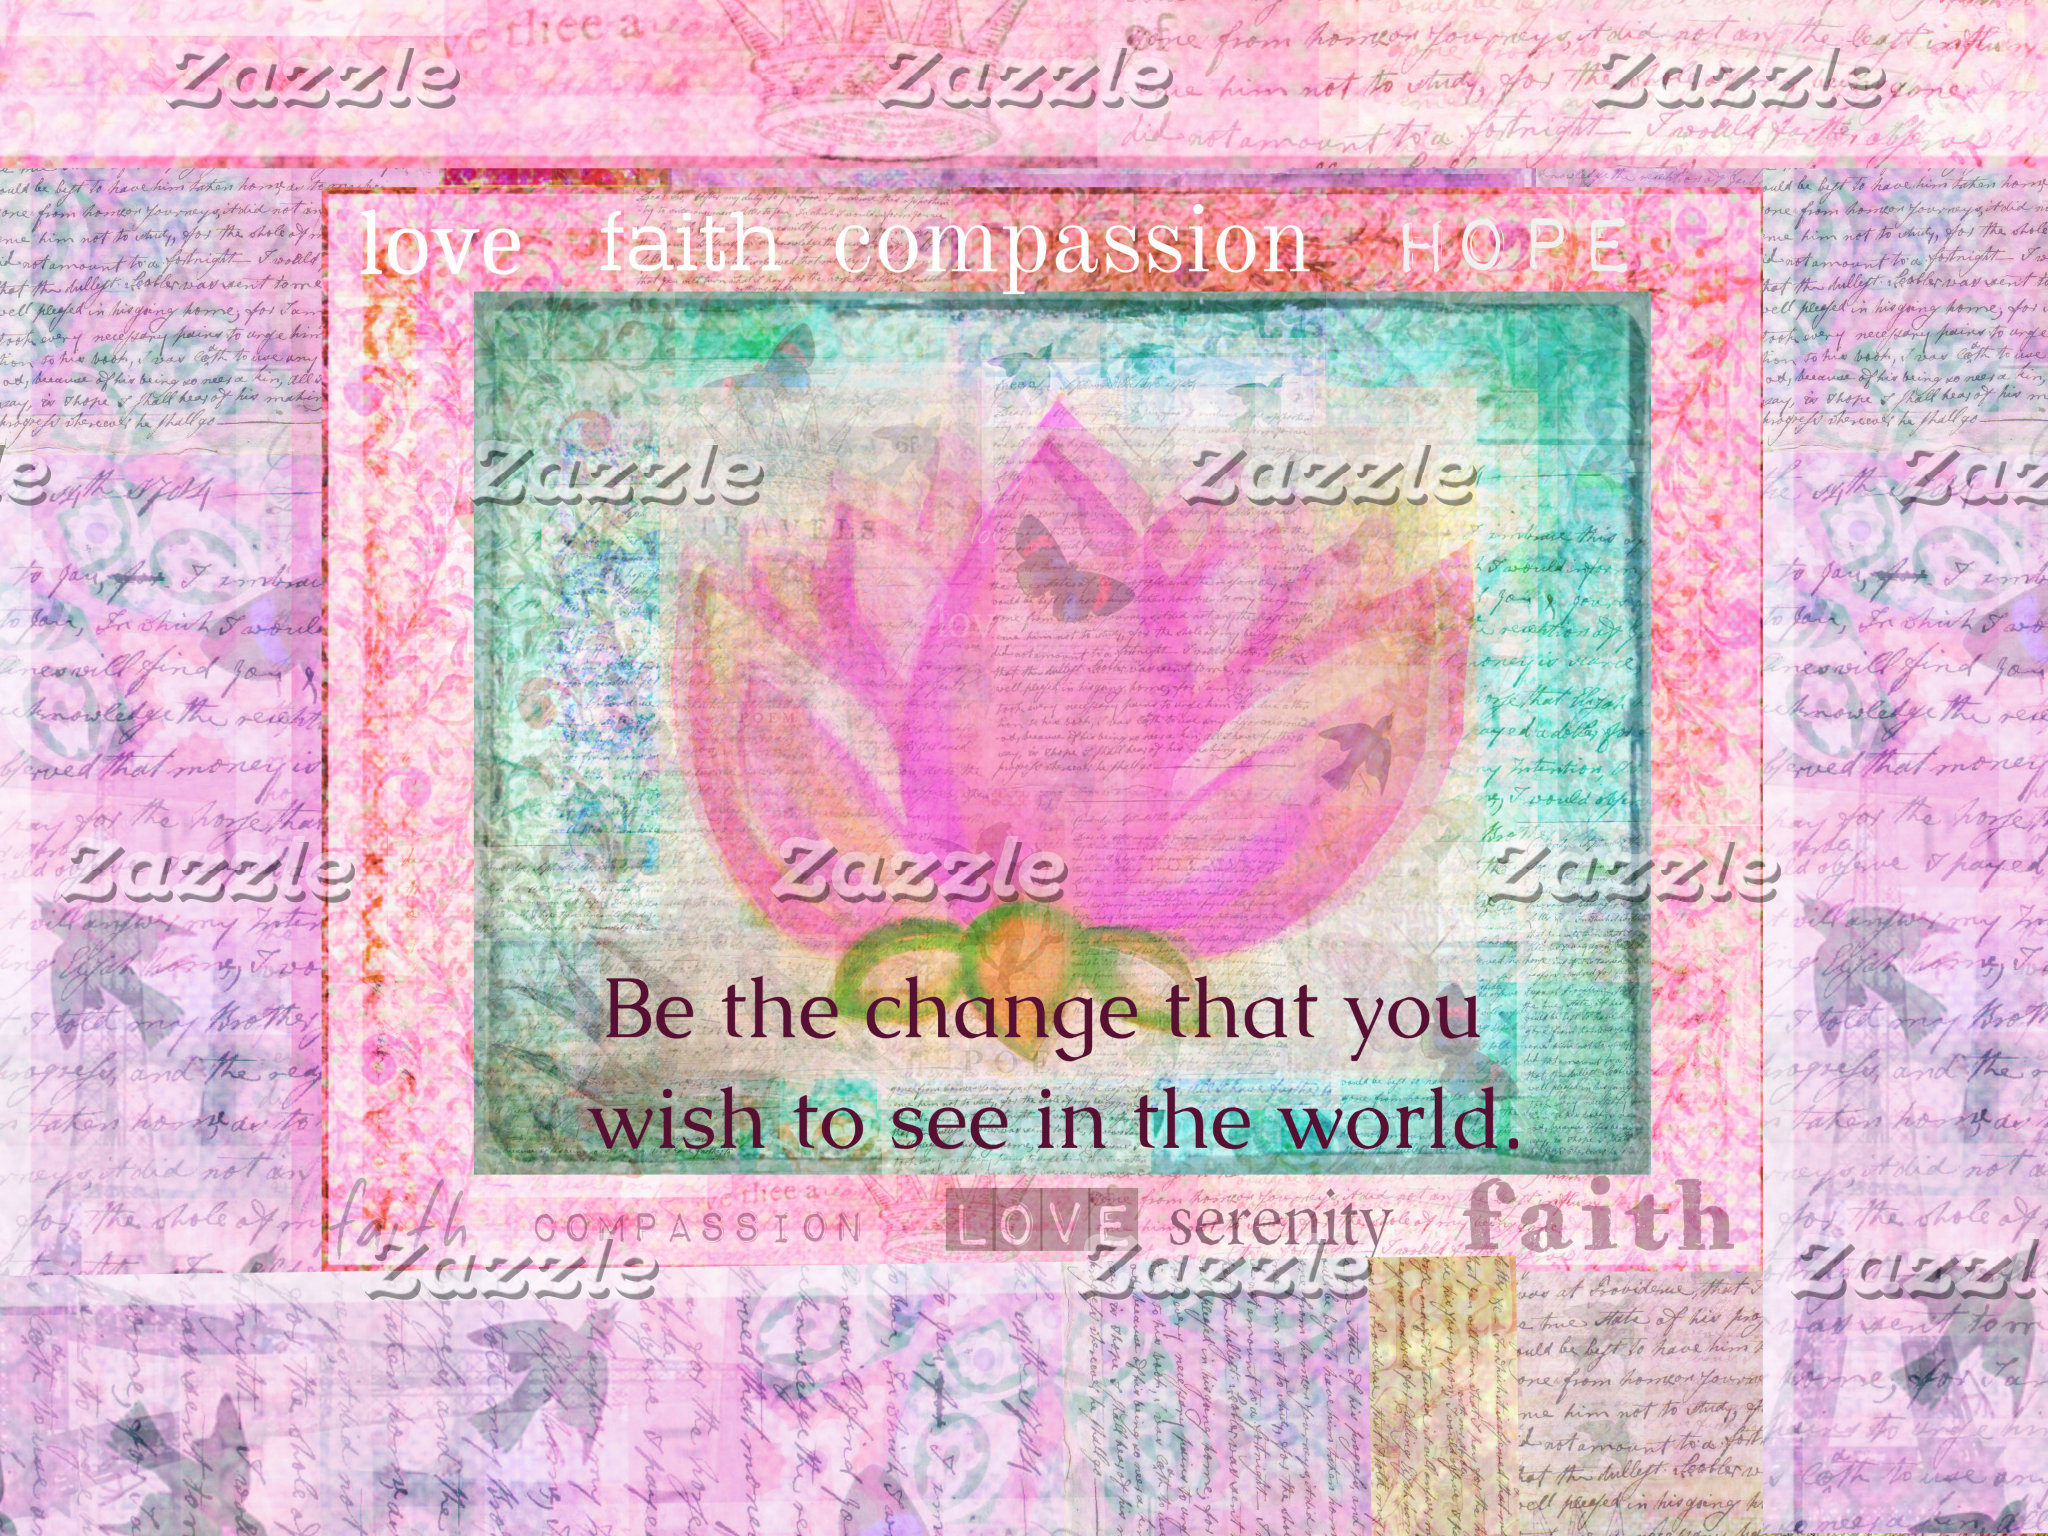 Be the change that you wish to see - pink lotus